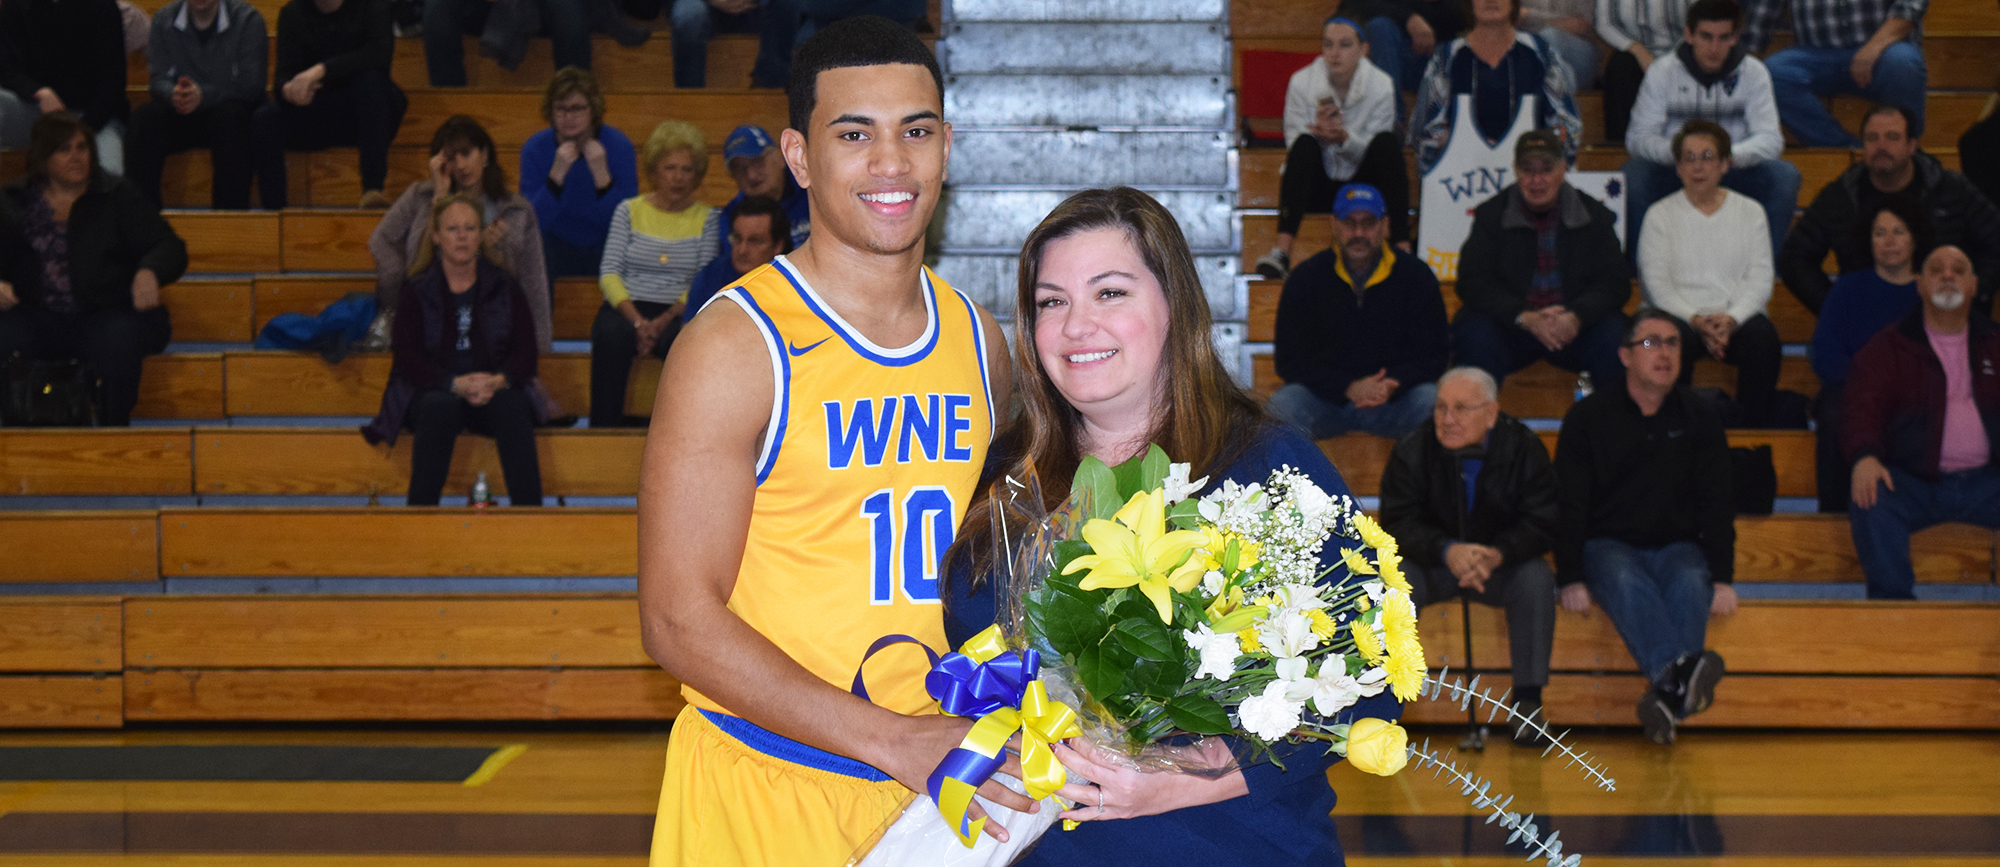 Senior Anthony Service was honored prior to the start of Western New England's 111-89 victory over UNE on Saturday. (Photo by Rachael Margossian)